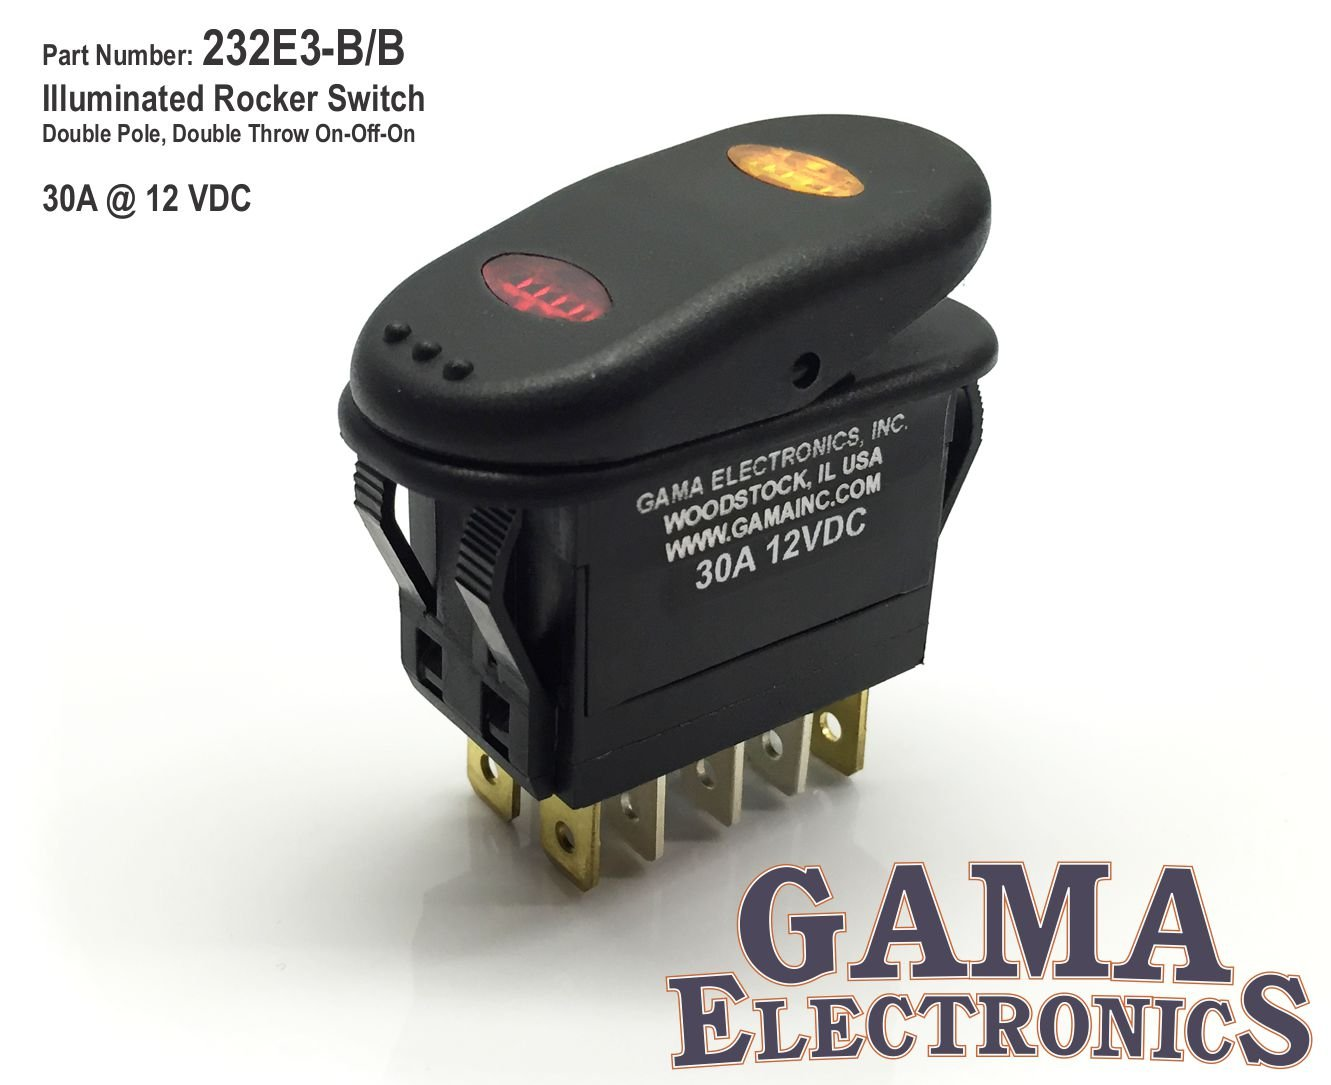 Gama Electronics Waterproof Illuminated Double Pole Wiring 12 Volt Toggle Switches Throw 3 Position On Off Rocker Switch Dpdt Automotive